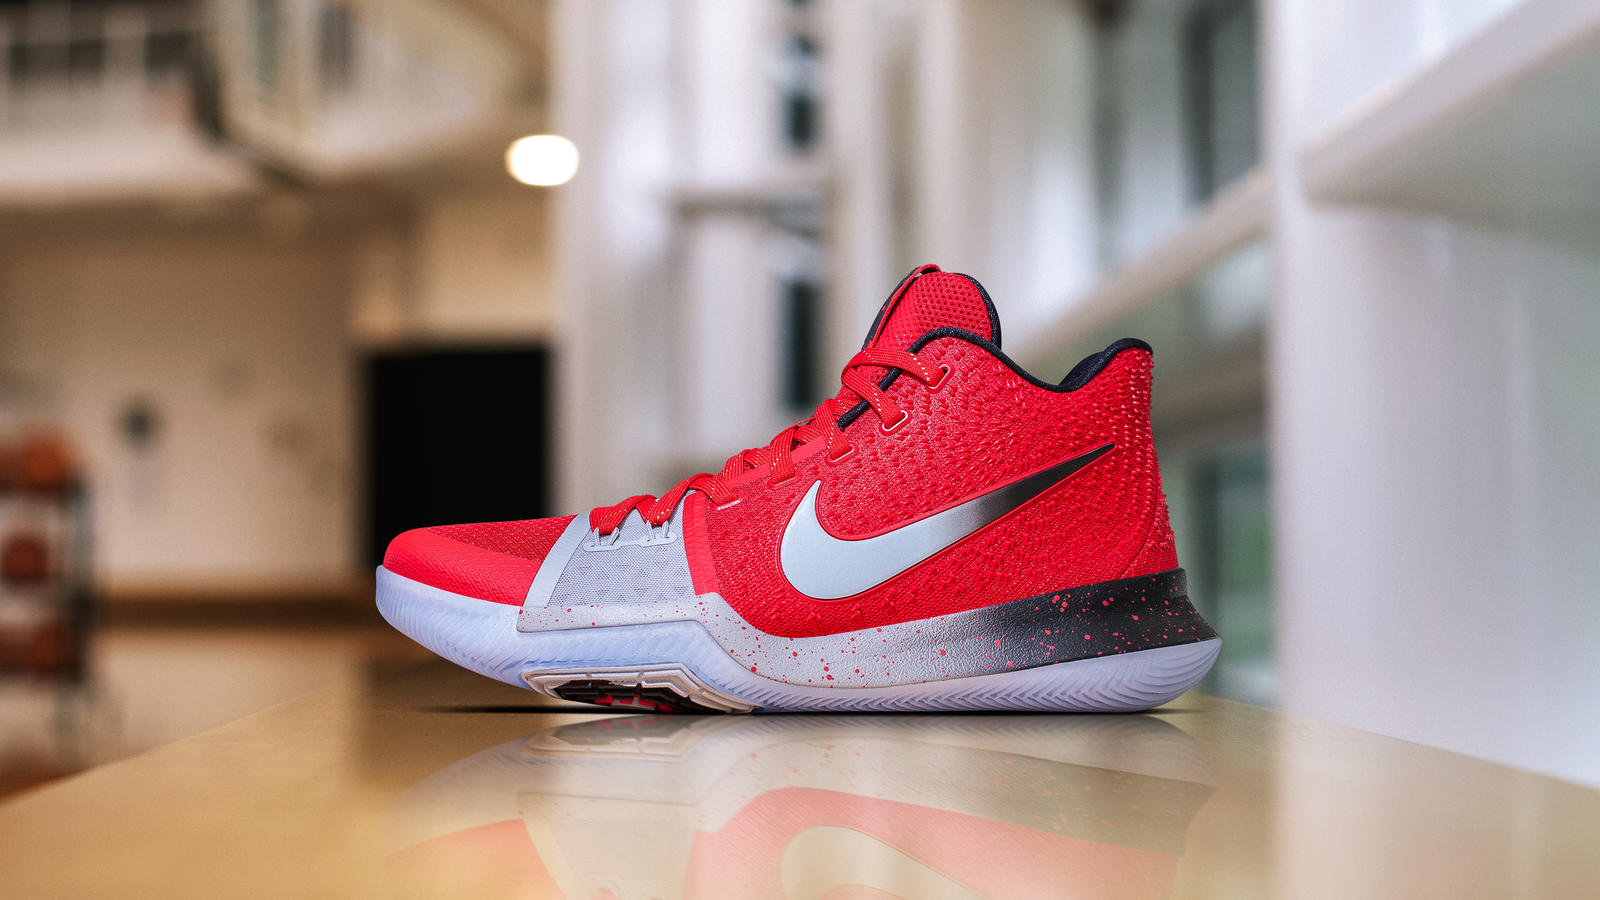 new products a4706 3f998 KYRIE 3 PE - Nike News